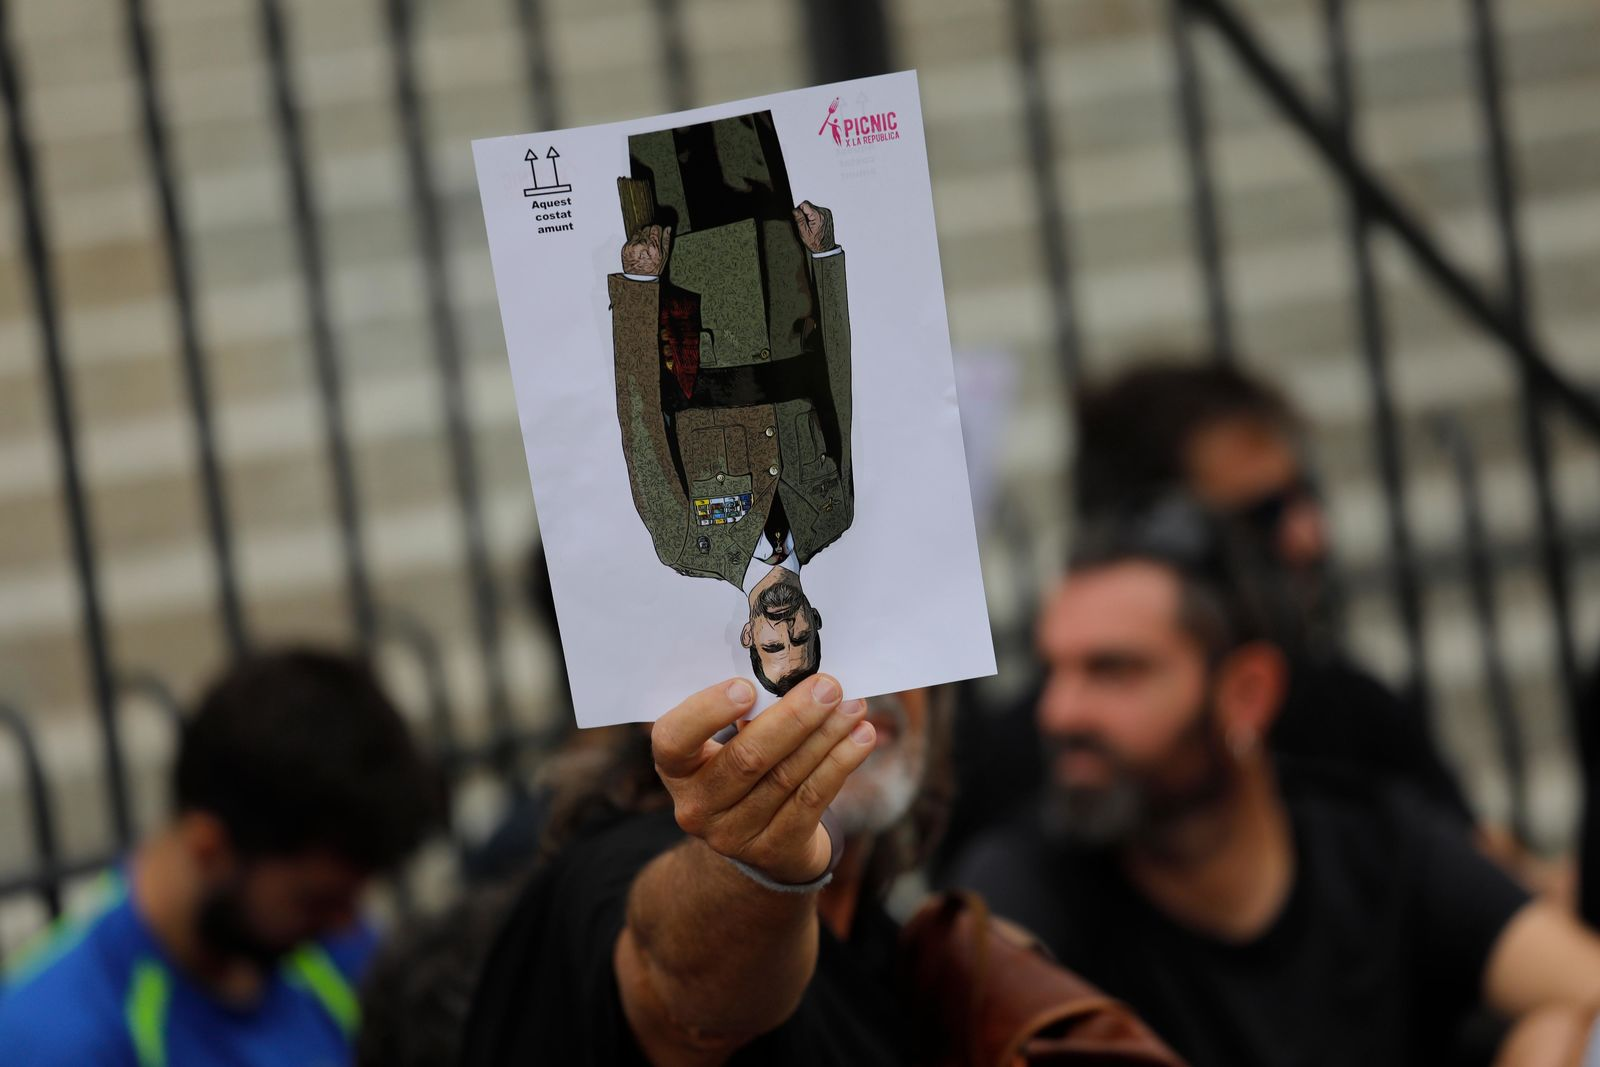 A protester holds a portrait of Spain's King Felipe upside down during a pro-independence gathering on the fifth day of protests over the conviction of a dozen Catalan independence leaders in Barcelona, Spain, Friday, Oct. 18, 2019. (AP Photo/Bernat Armangue)